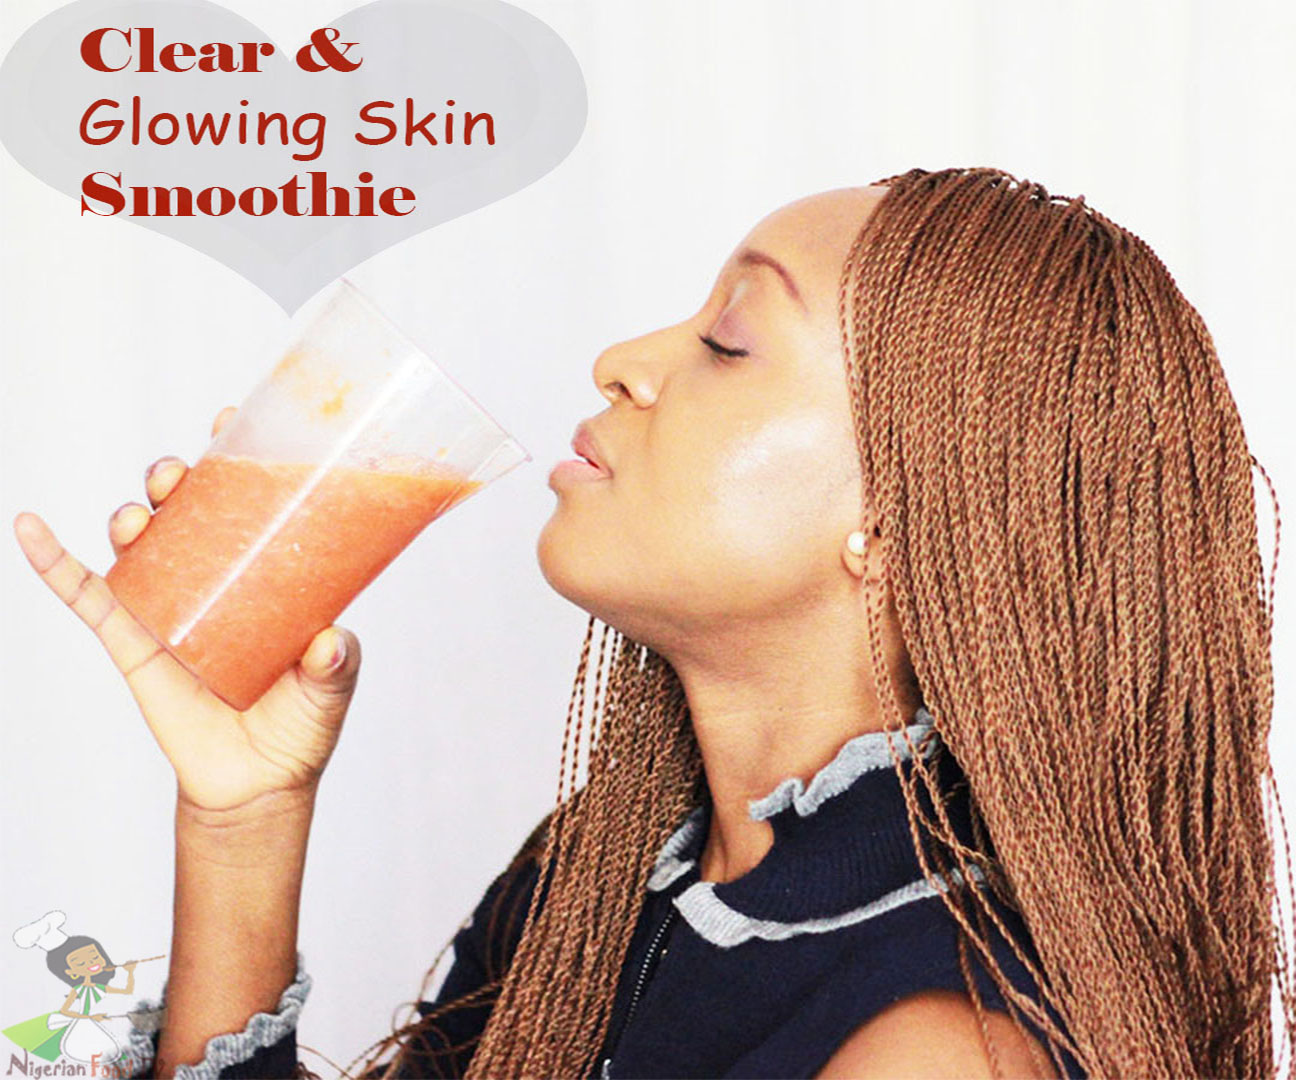 Skin Glowing Smoothie: CLear and Brighter Skin in 5 days